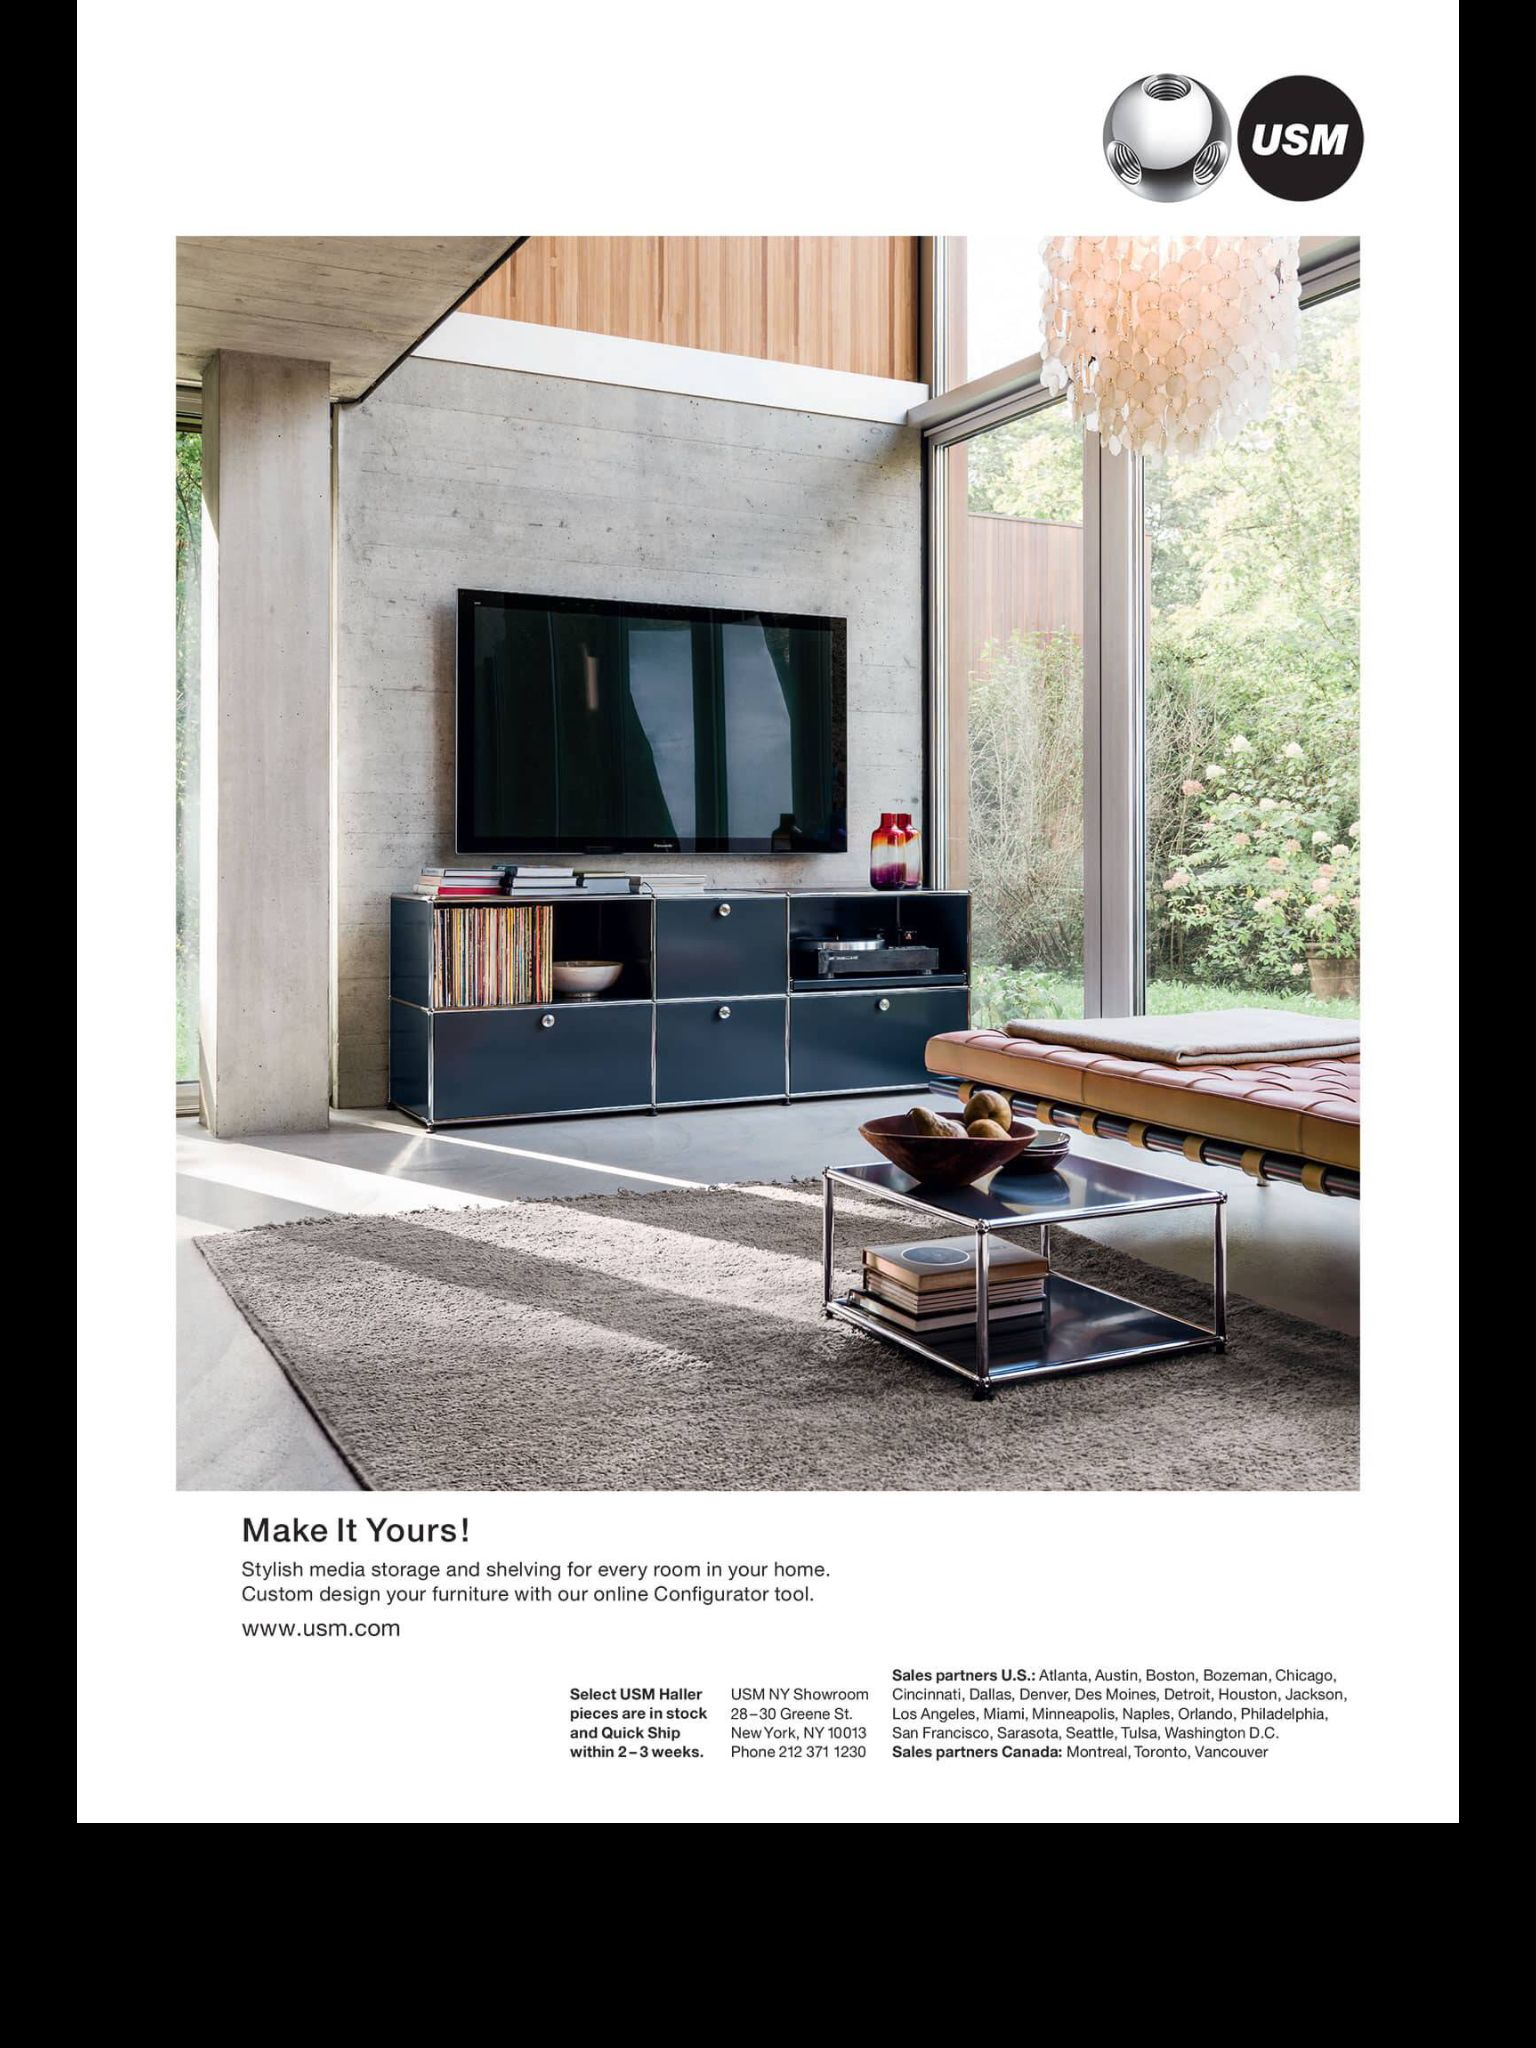 Adver From Elle Décor June 2018 Read It On The Texture Unlimited Access To 200 Top Magazines